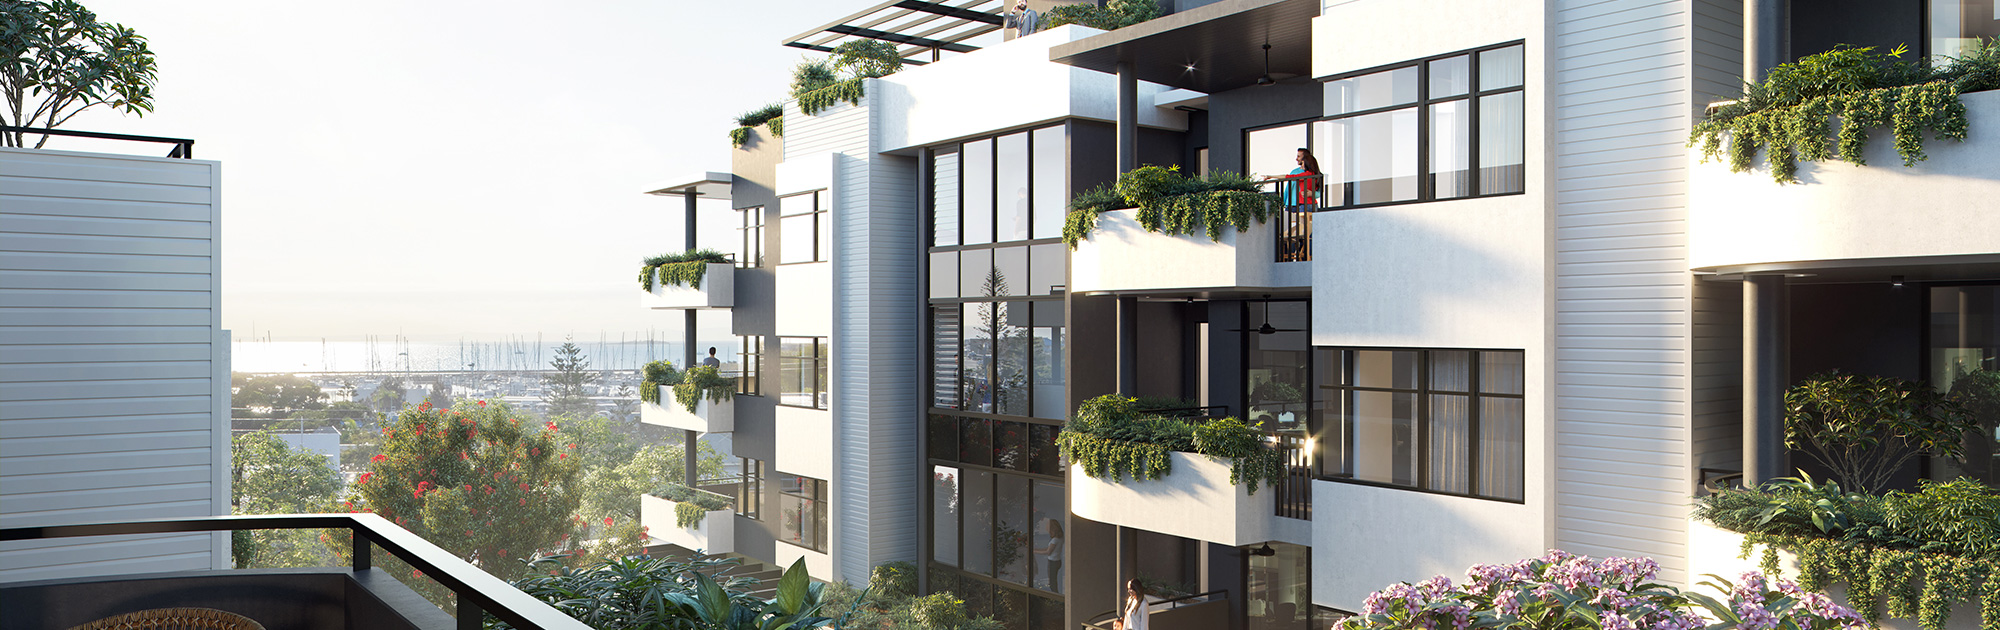 191 Stratton Apartments for Sale- CBRE Residential ...